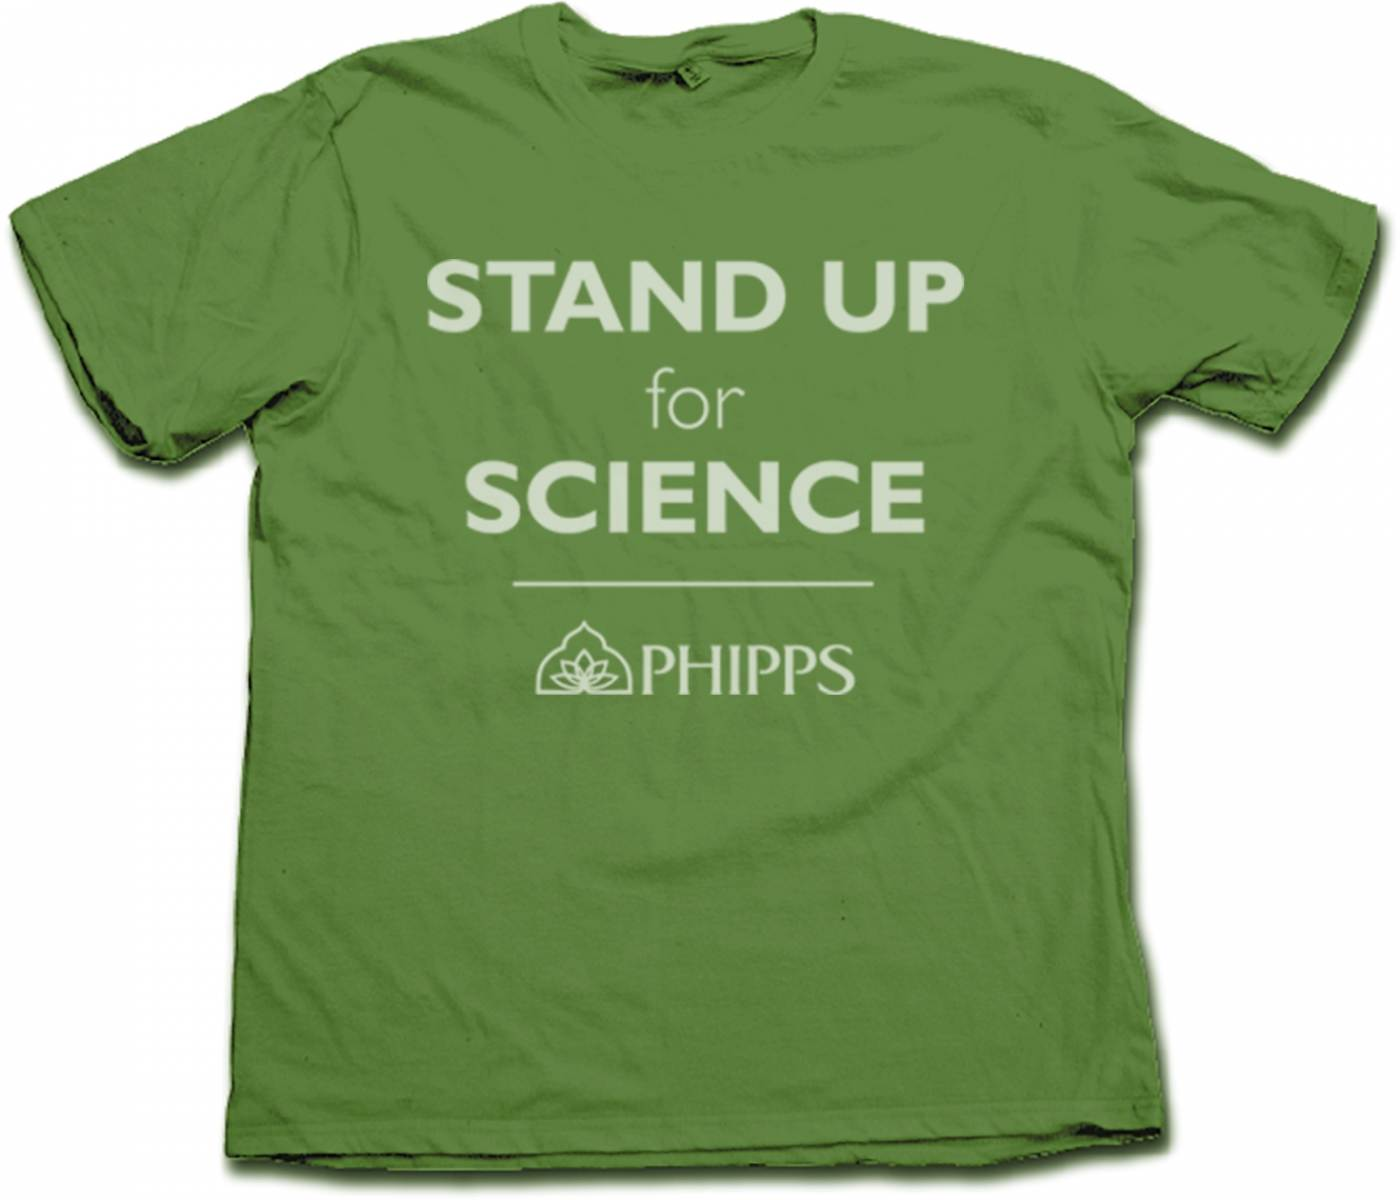 Stand Up for Science T-Shirt (Green)